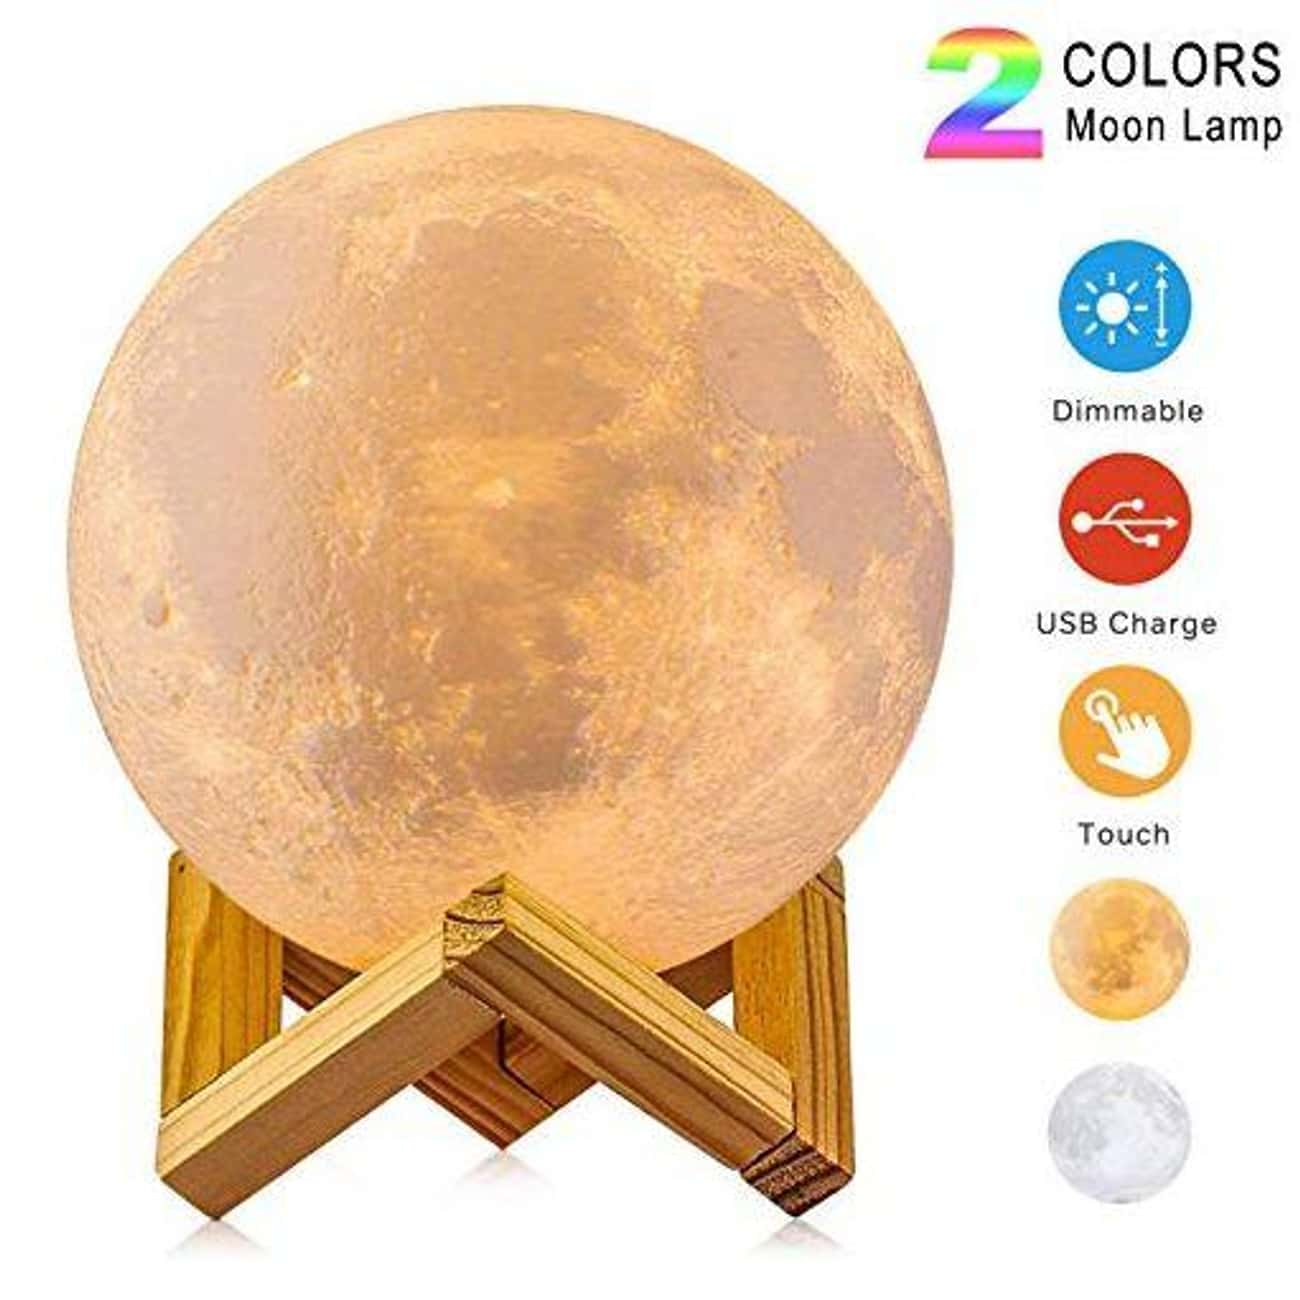 Moon Lamp is listed (or ranked) 1 on the list The Best Secret Santa Gifts